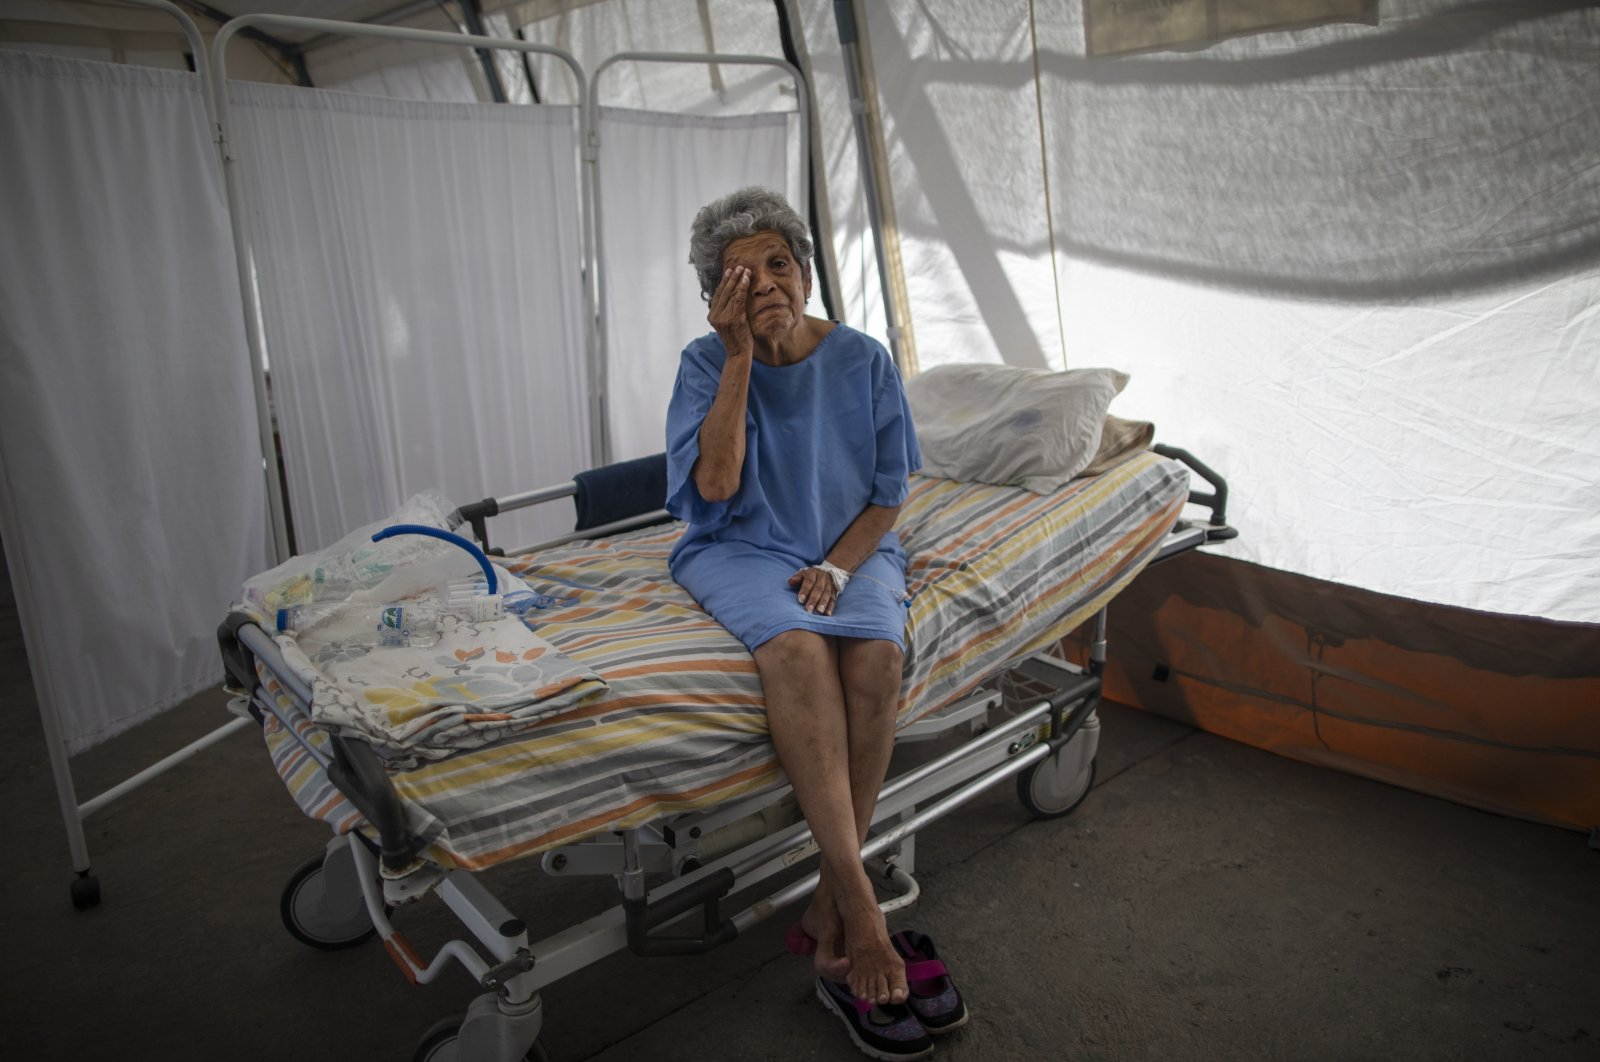 A 76-year-old patient wipes tears as she explains her battle with COVID-19 under a tent for patients who will be discharged from the Perez de Leon II Hospital in Caracas, Venezuela, Sept. 22, 2020. (AP Photo)